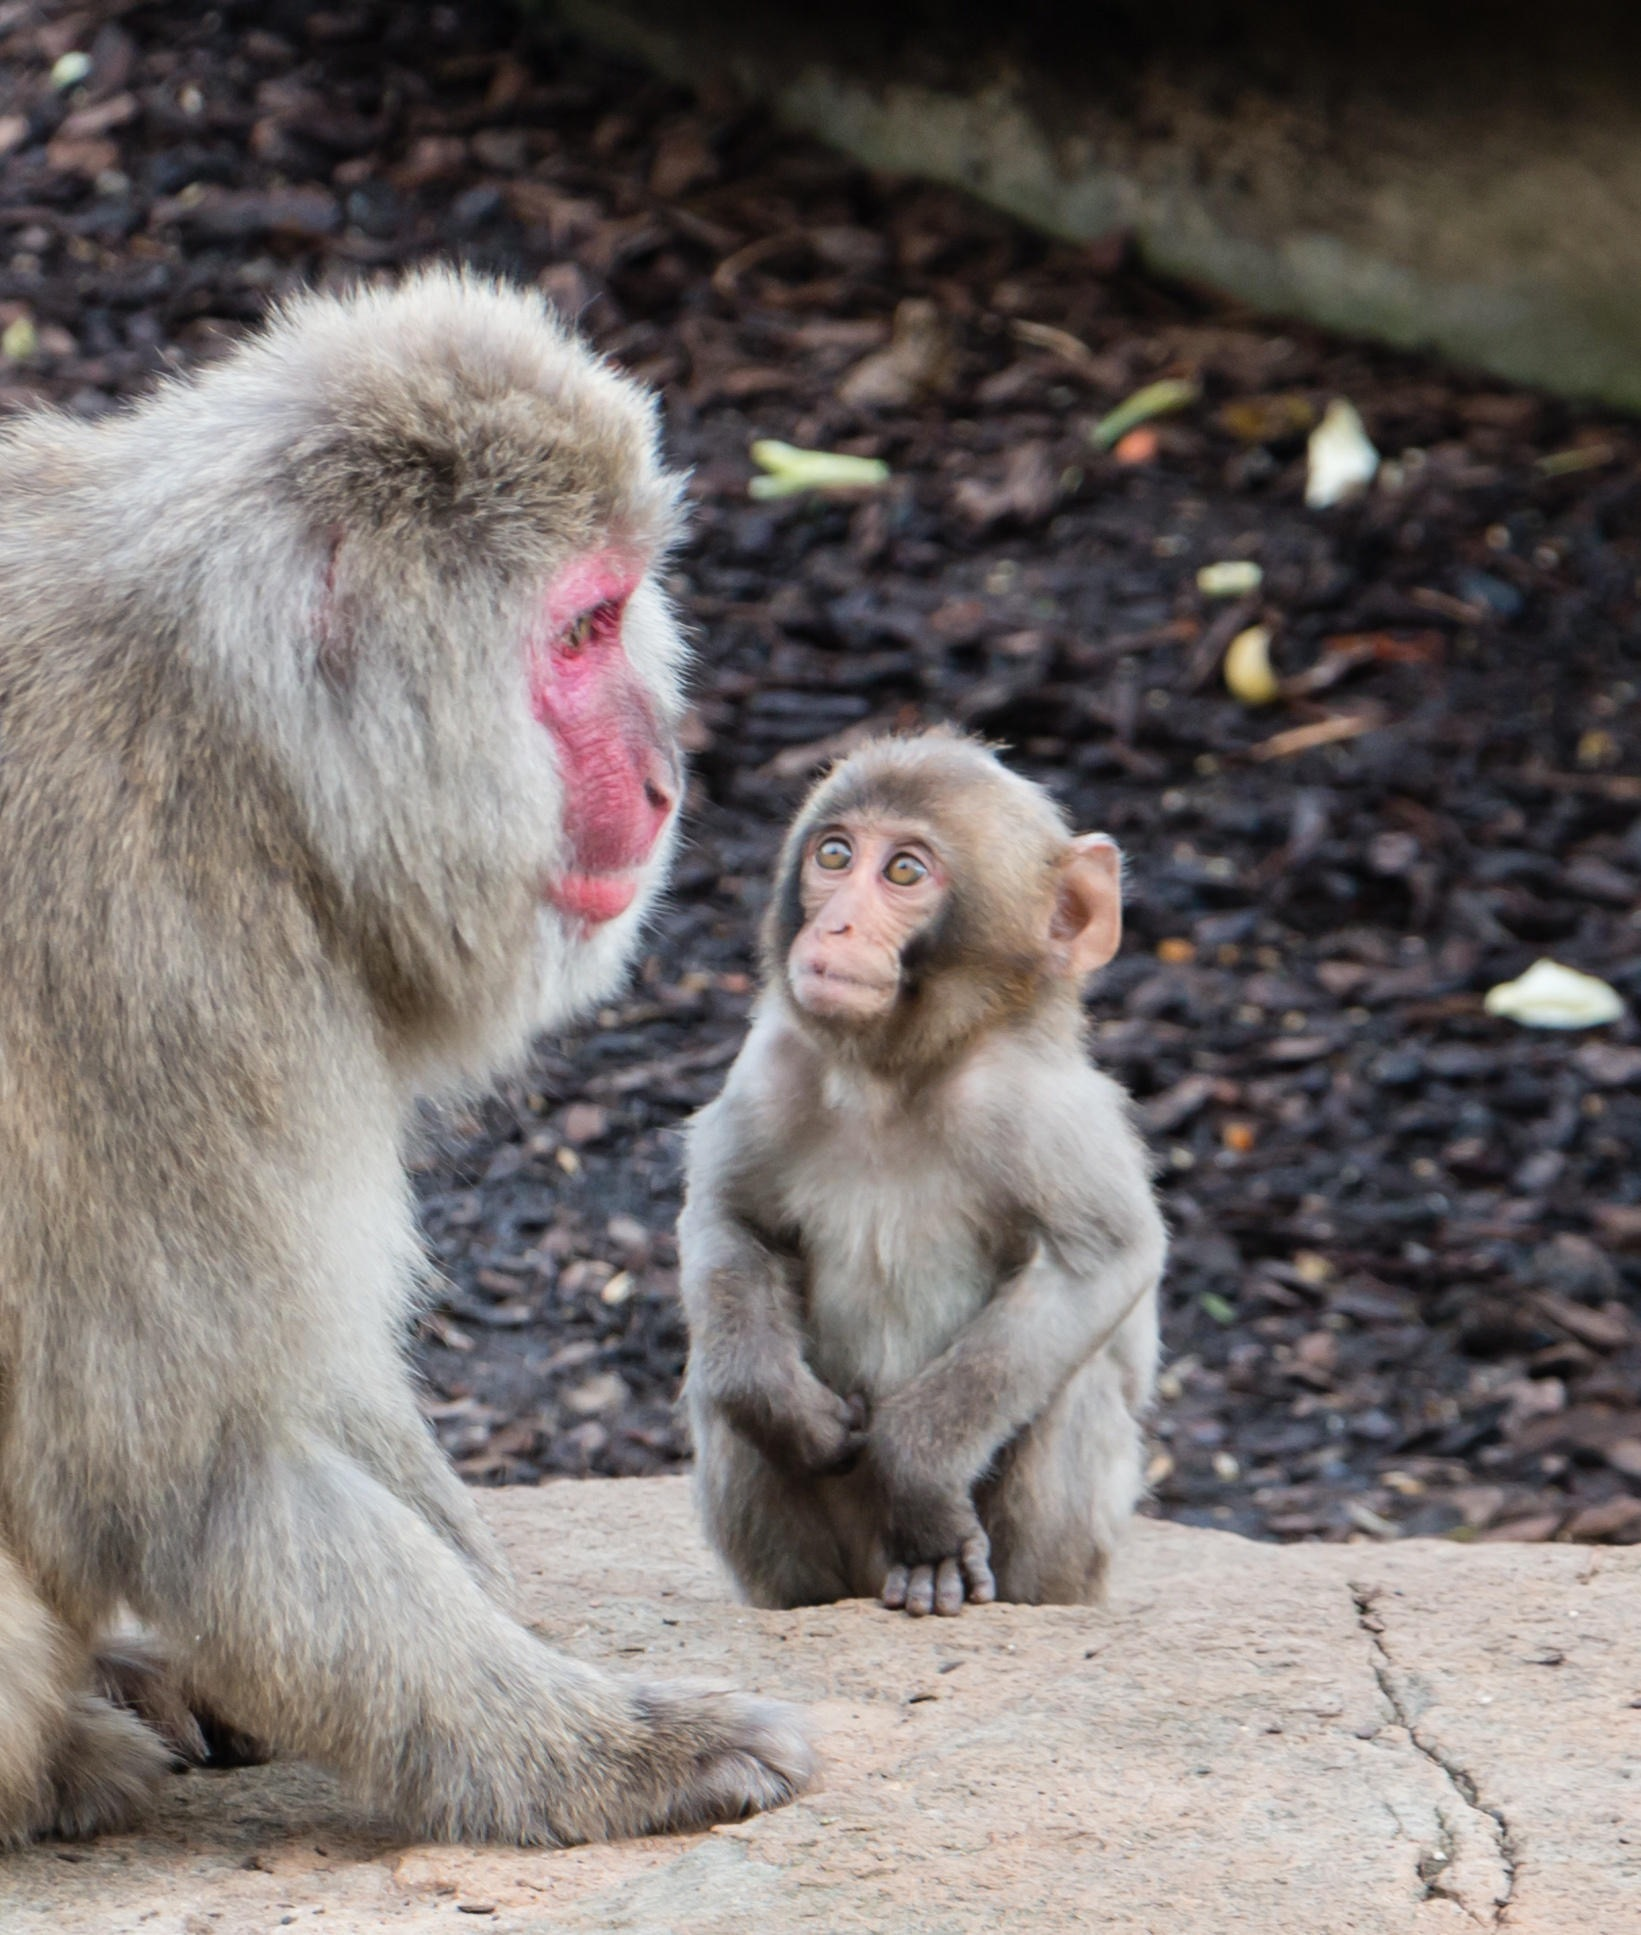 Macaques down under by tastigr